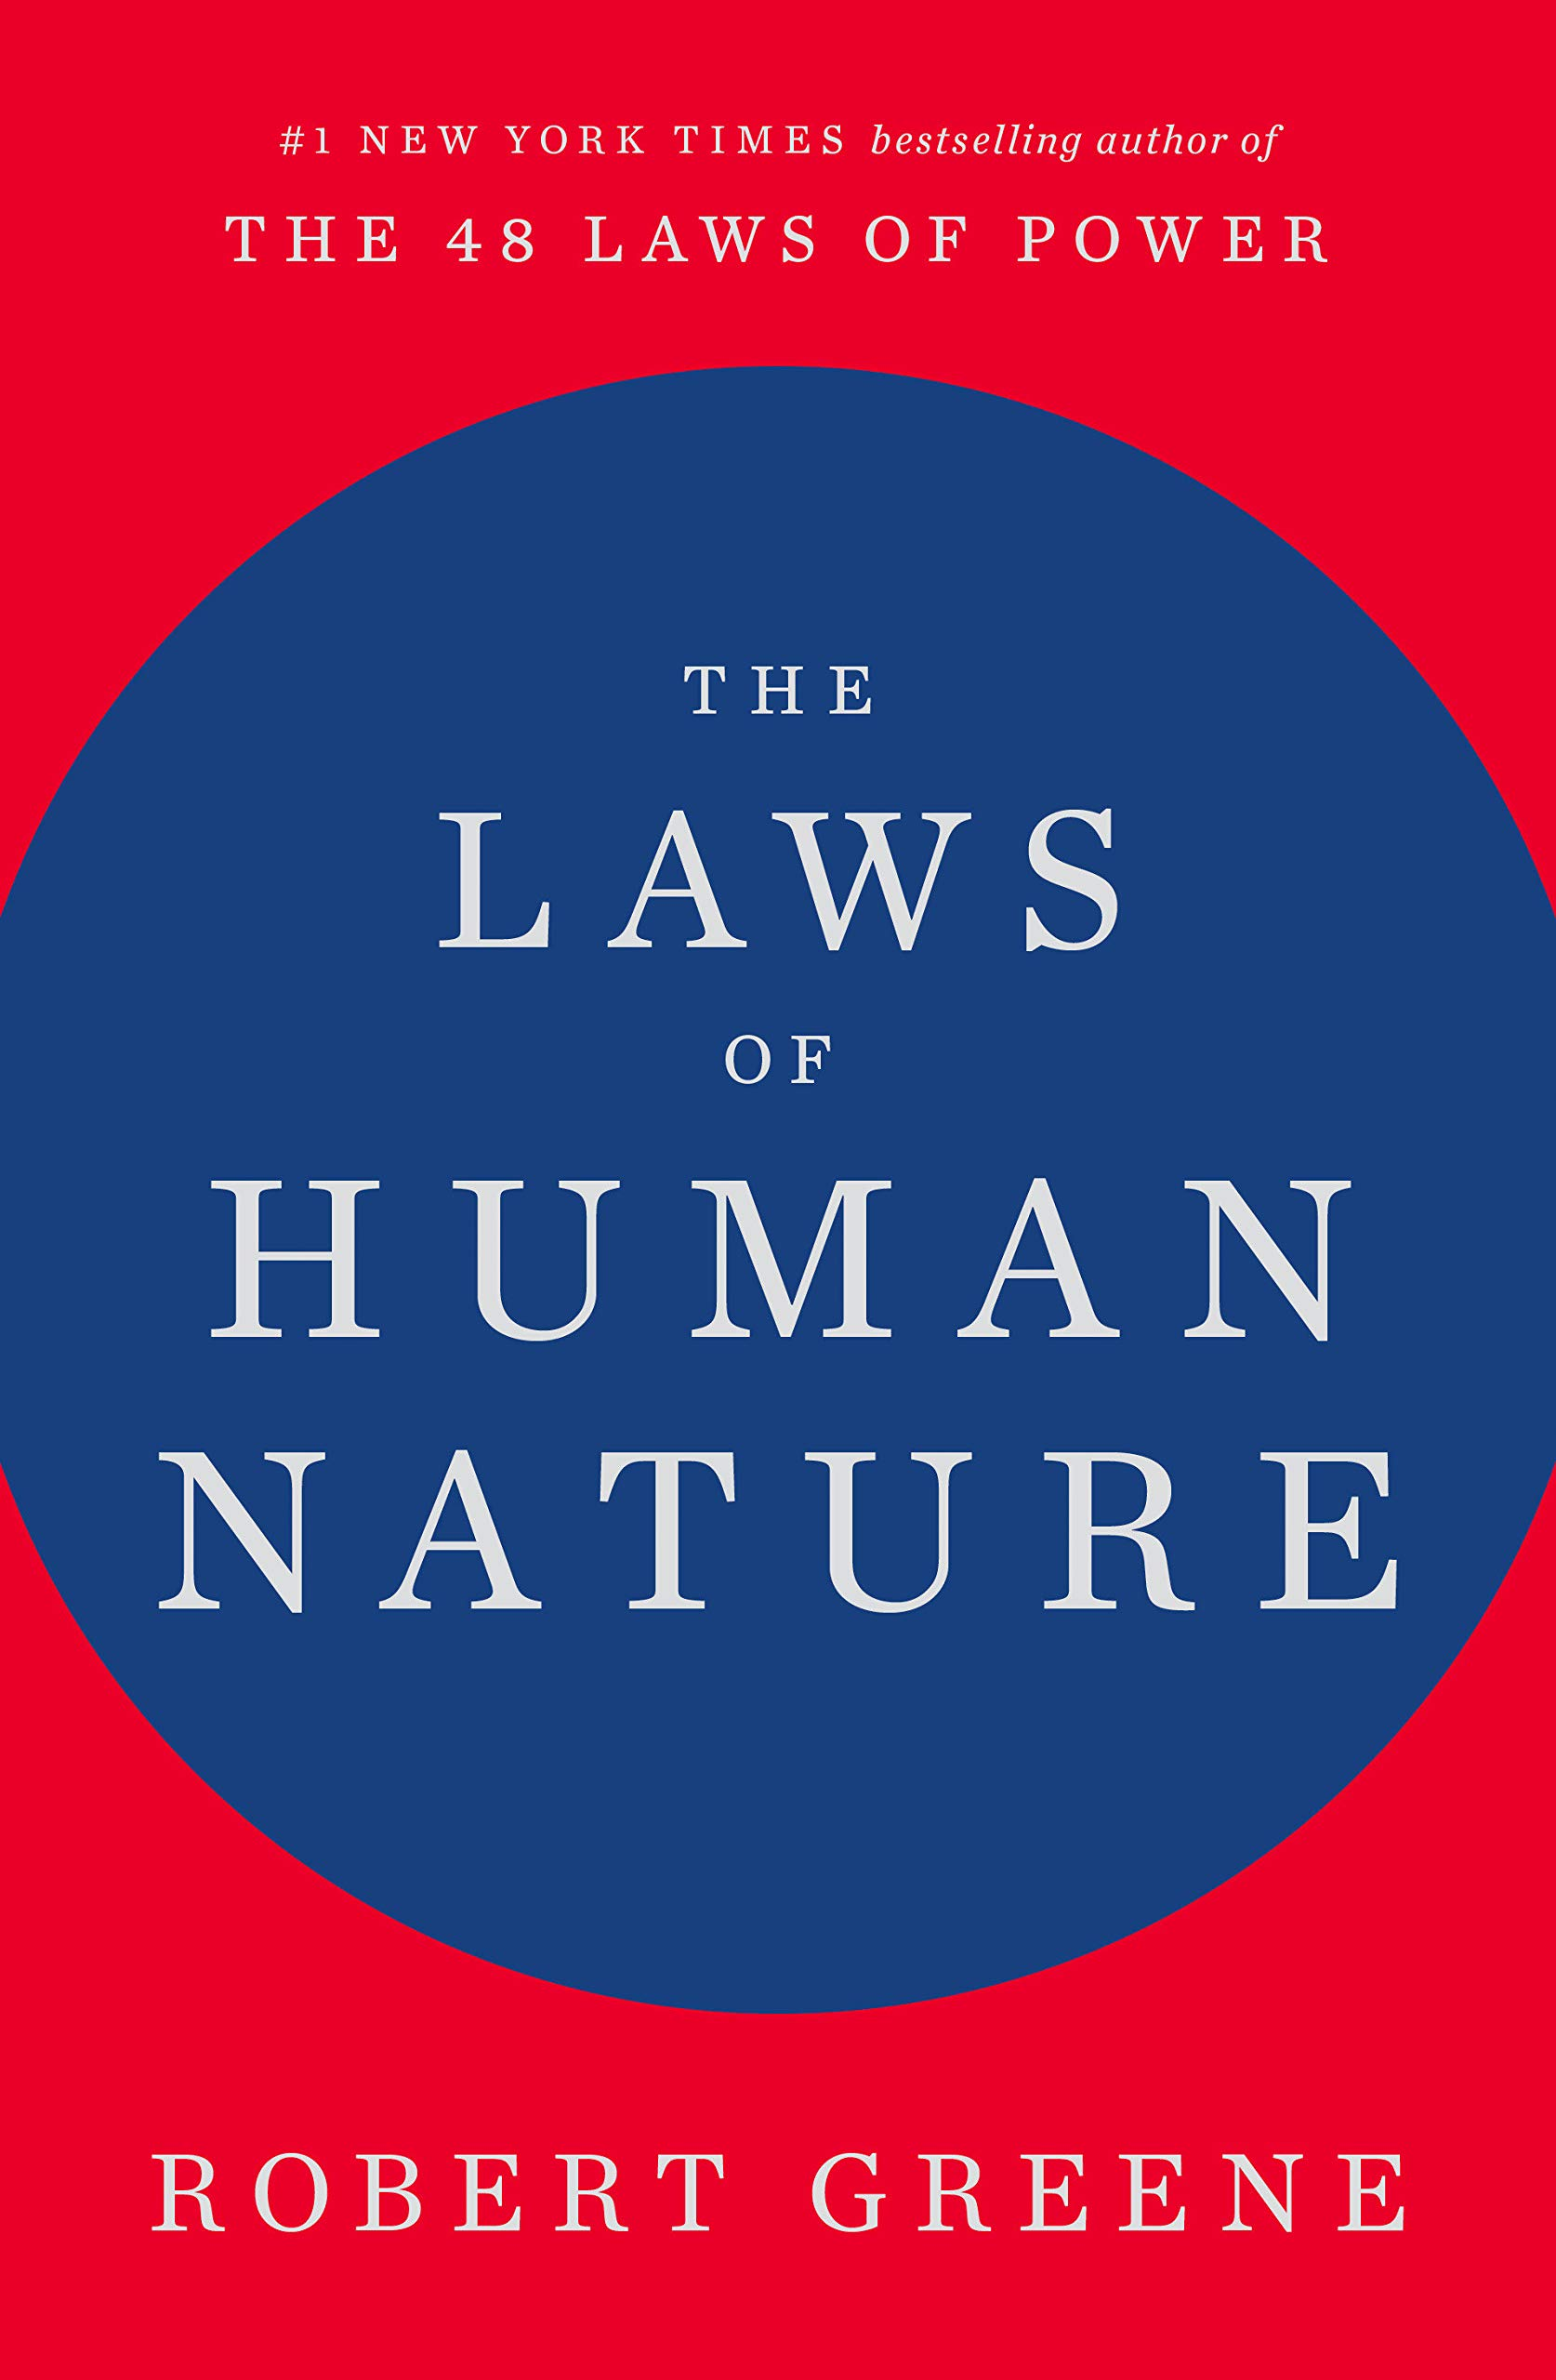 Robert Greene - laws of human nature.jpg